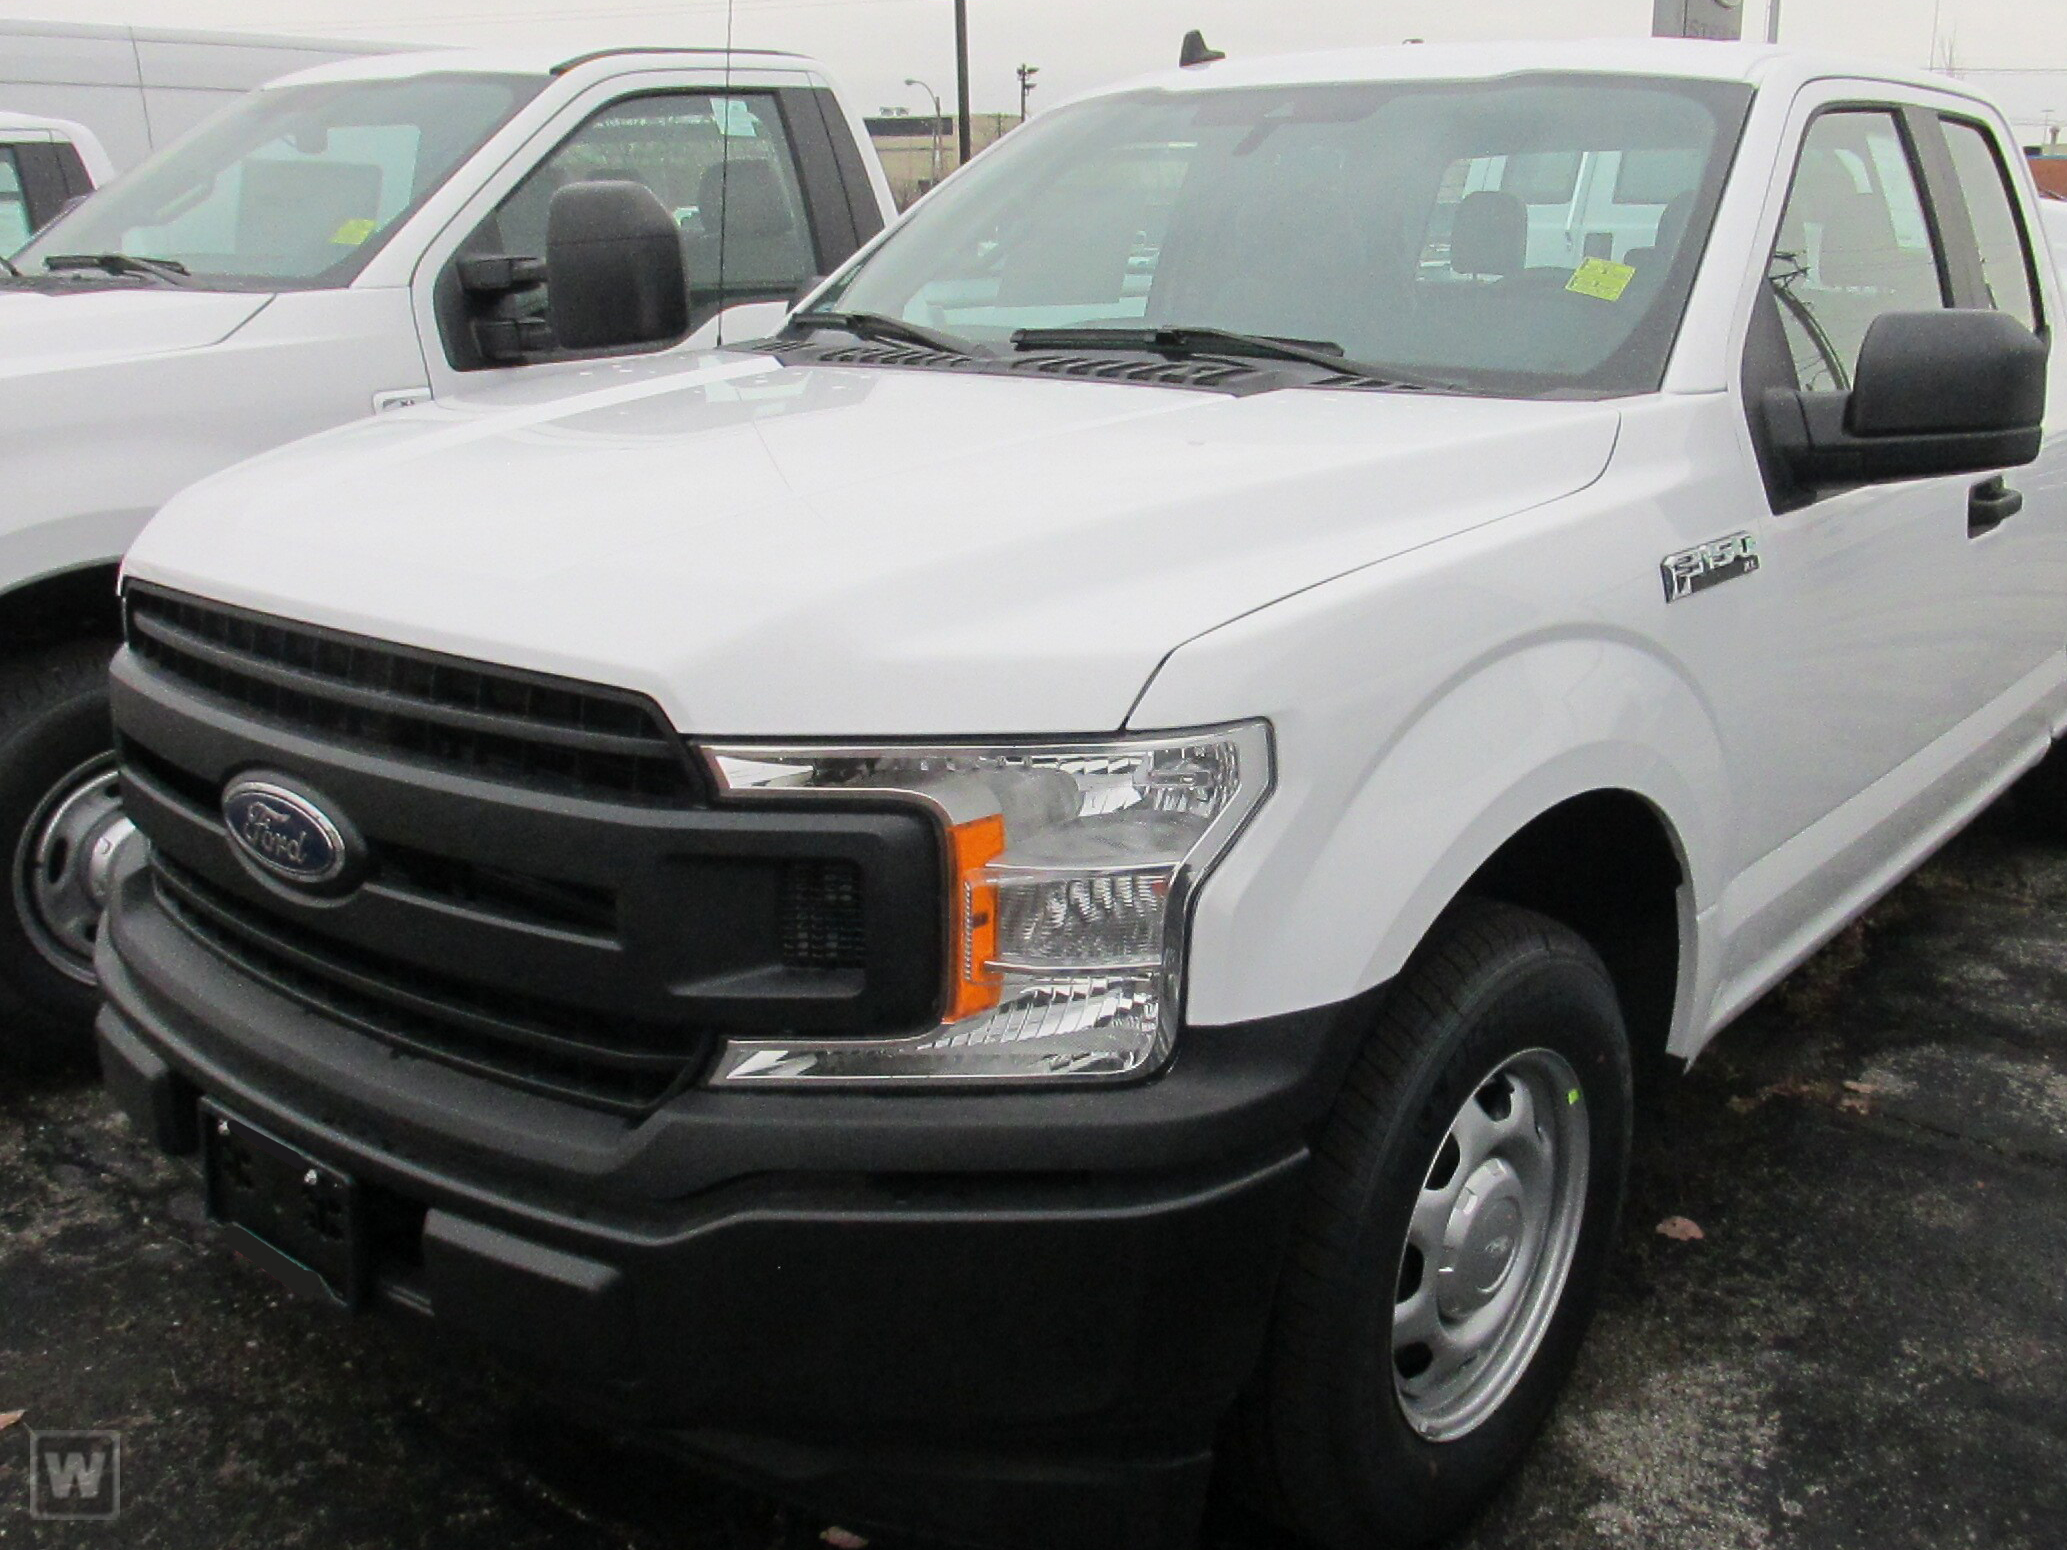 2020 Ford F-150 Super Cab 4x4, Pickup #2543 - photo 1